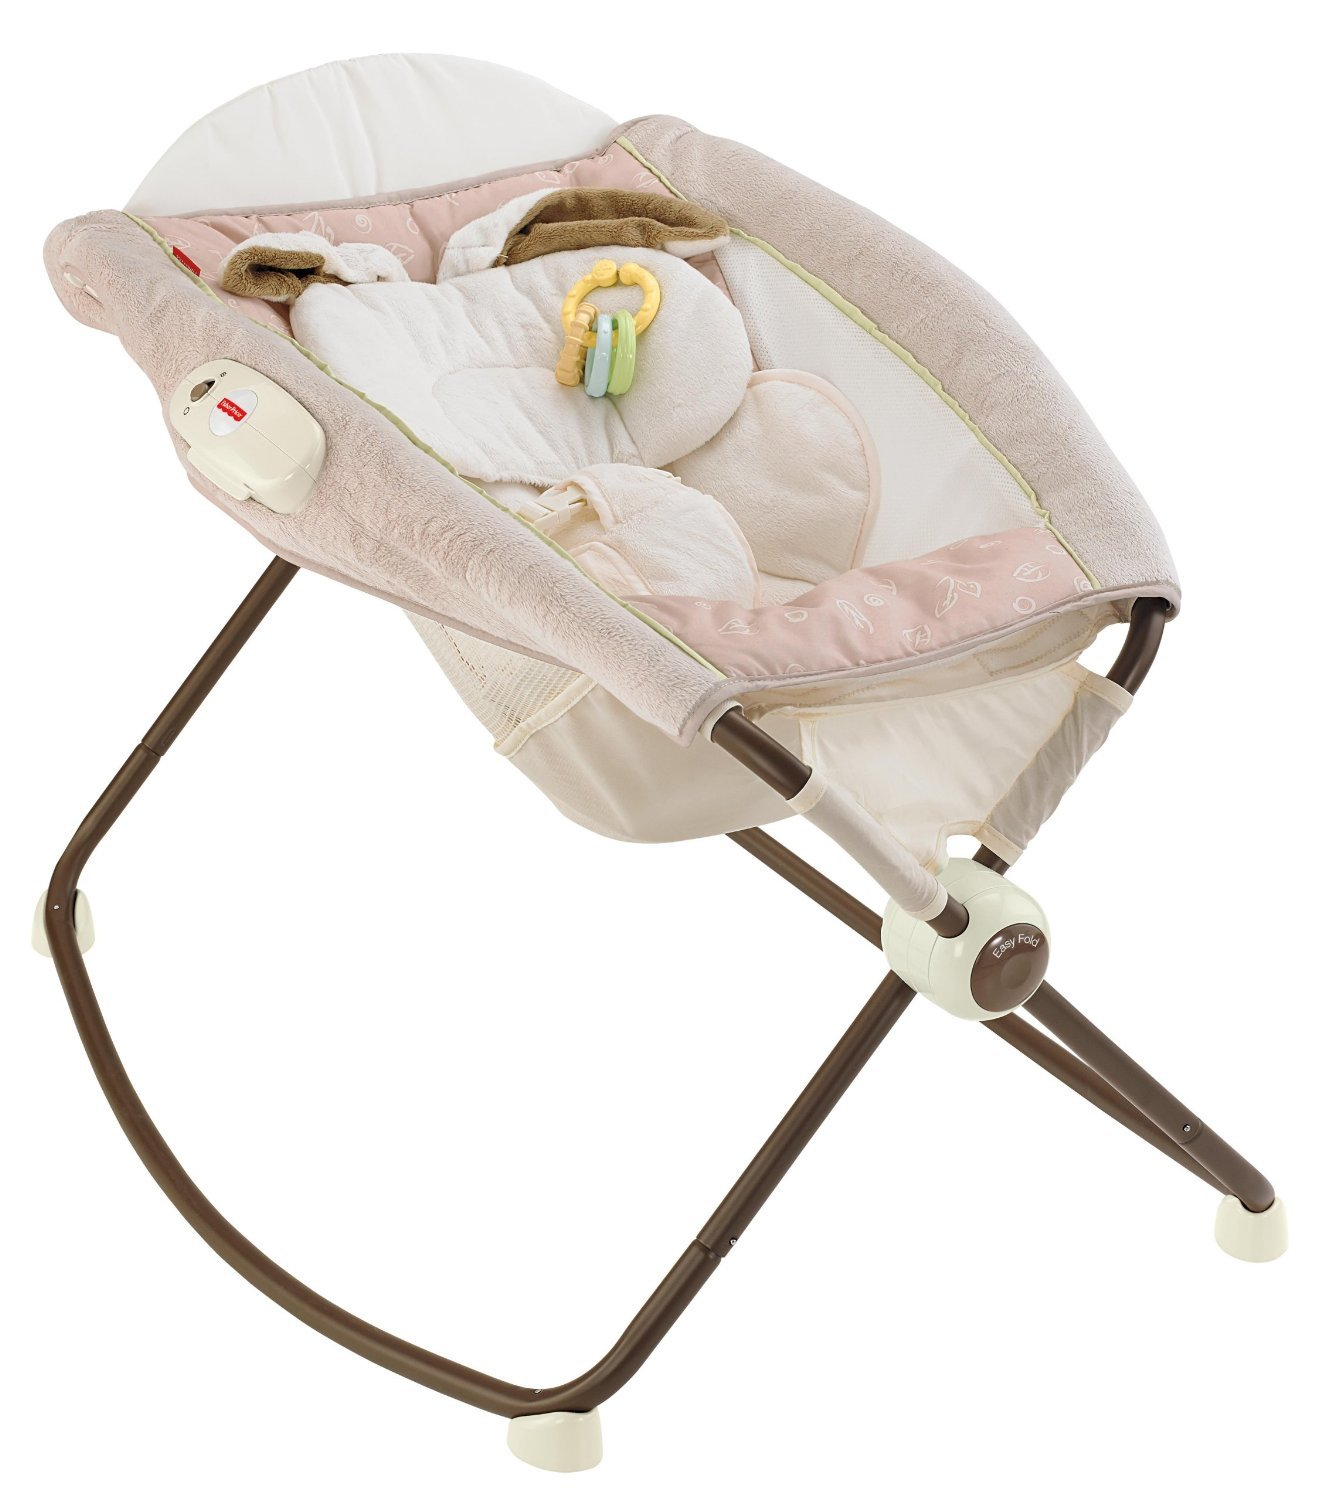 Fisher-Price New born Rock n Play Sleeper, My Little Snugabunny: Amazon.es: Bebé